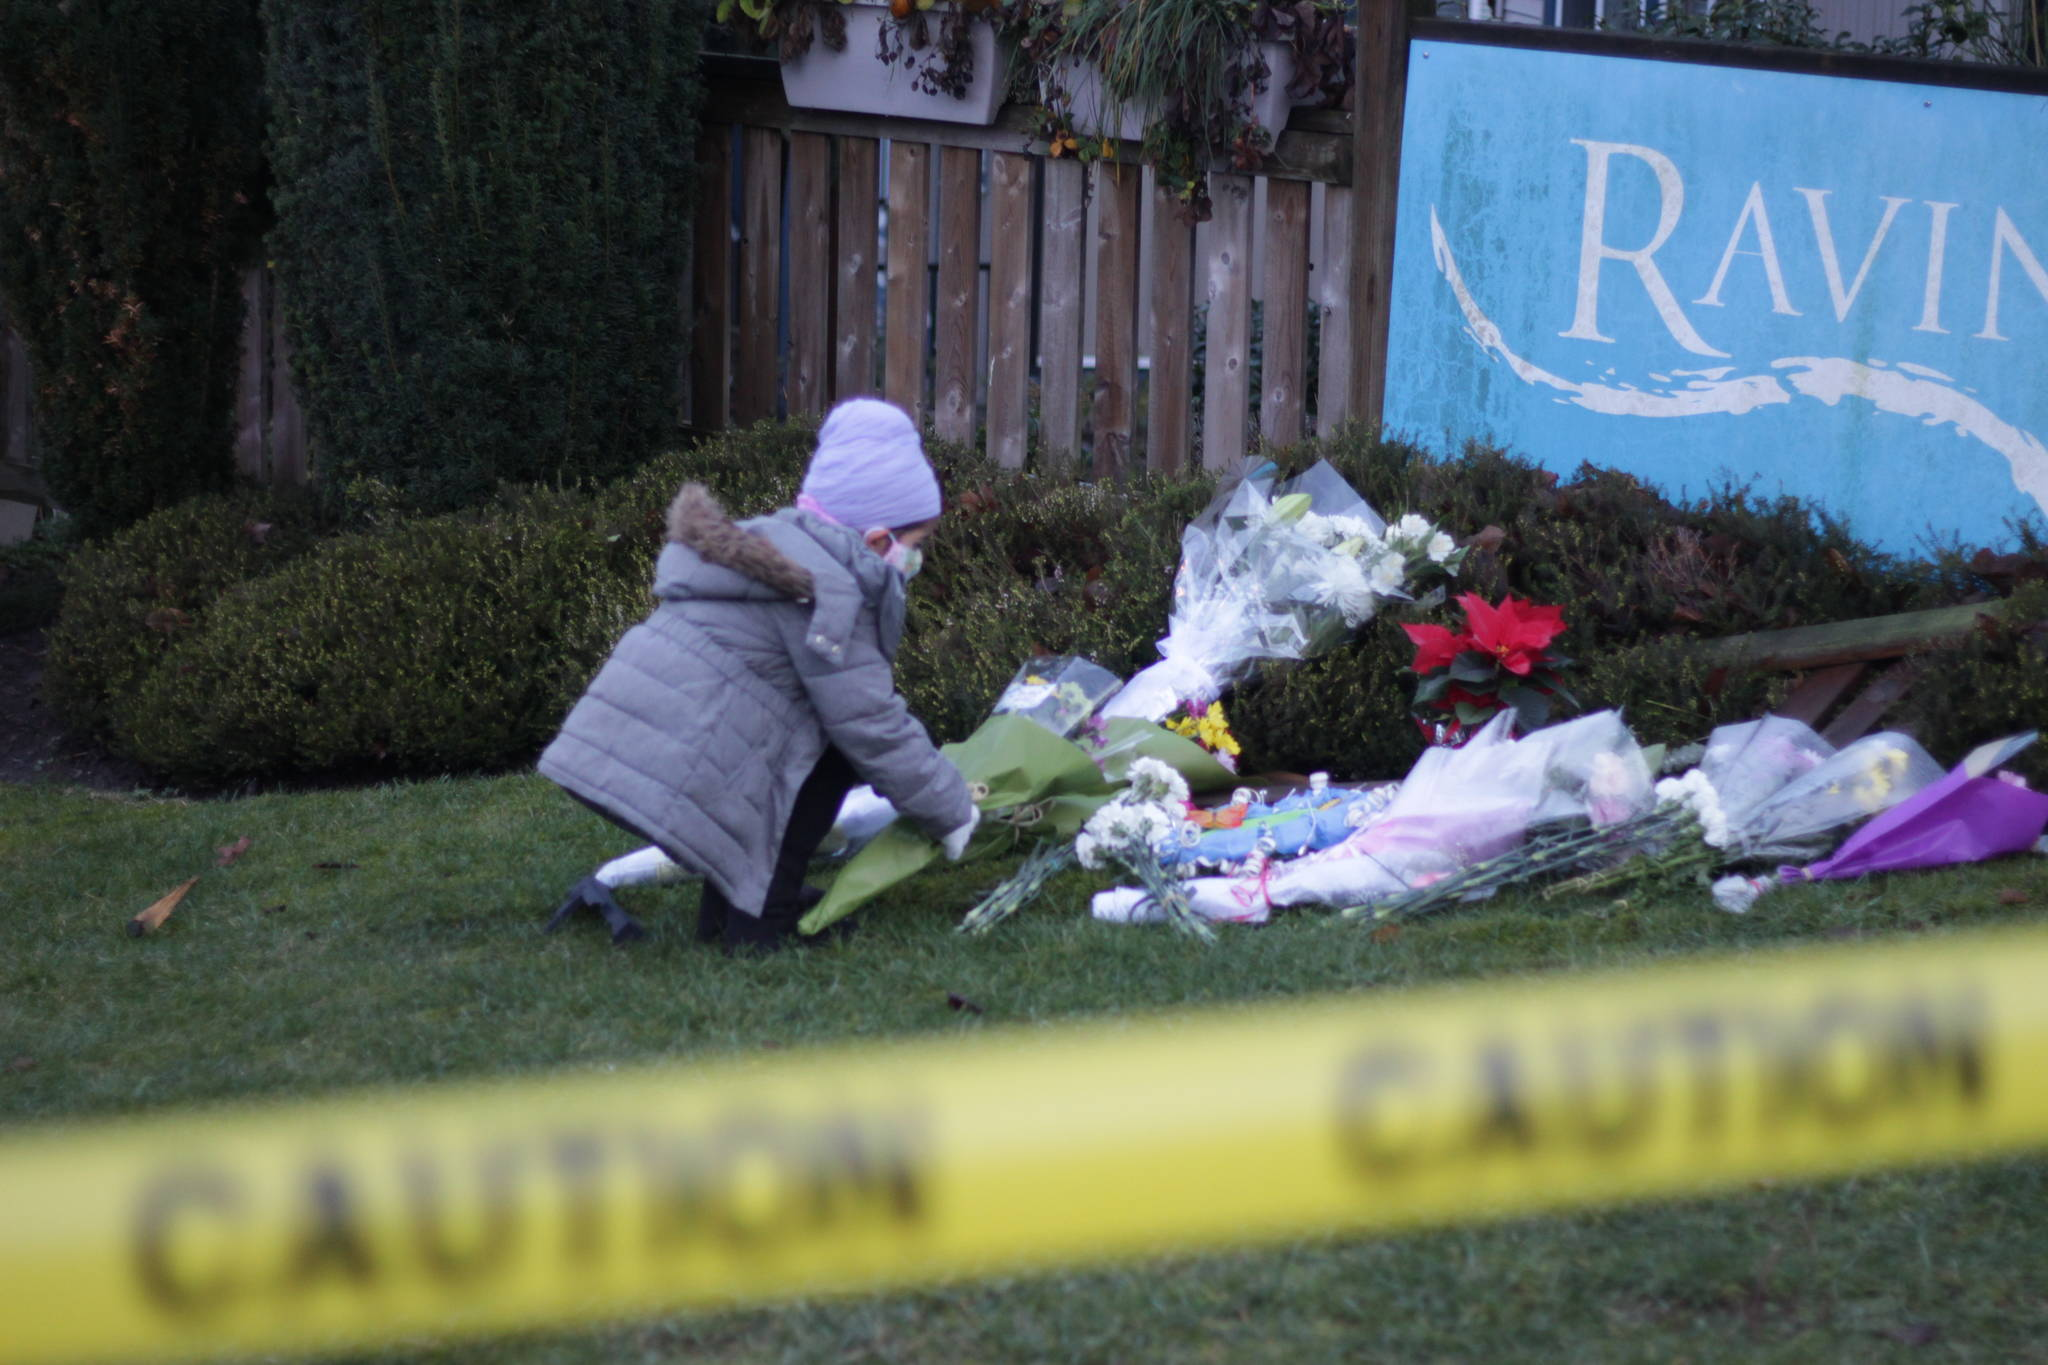 A child in the community places flowers at the site where a Surrey mom was killed by a runaway cargo van on Tuesday, Dec. 15, 2020. On Thursday, dozens of people from the community came together to pay tribute to the mom. (Photo: Lauren Collins)